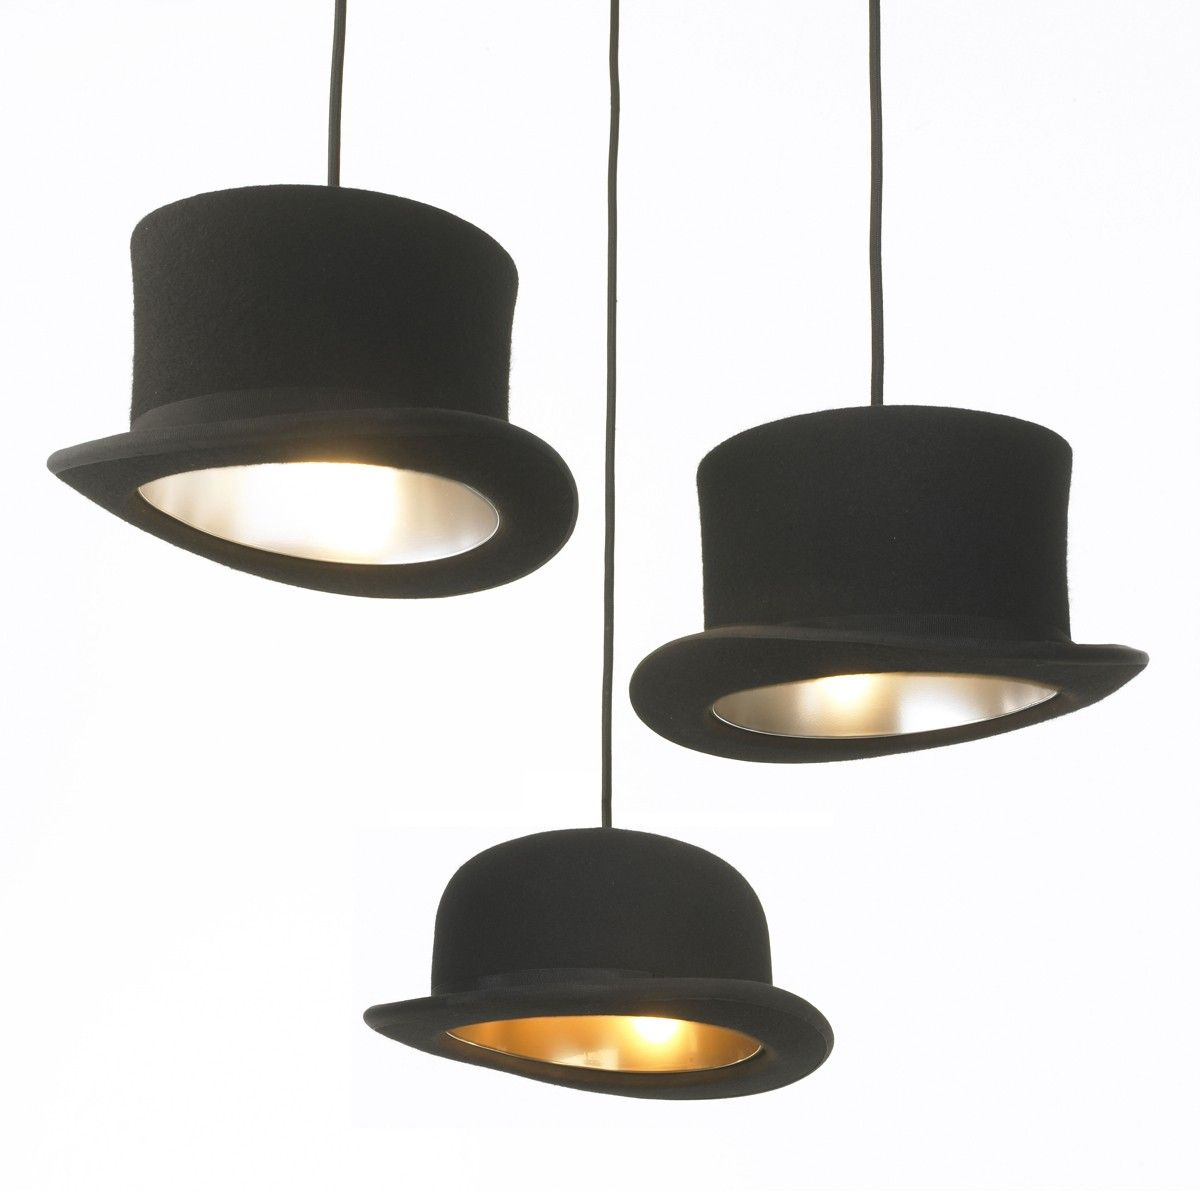 top hat lights. could be fun for a little boy's room.